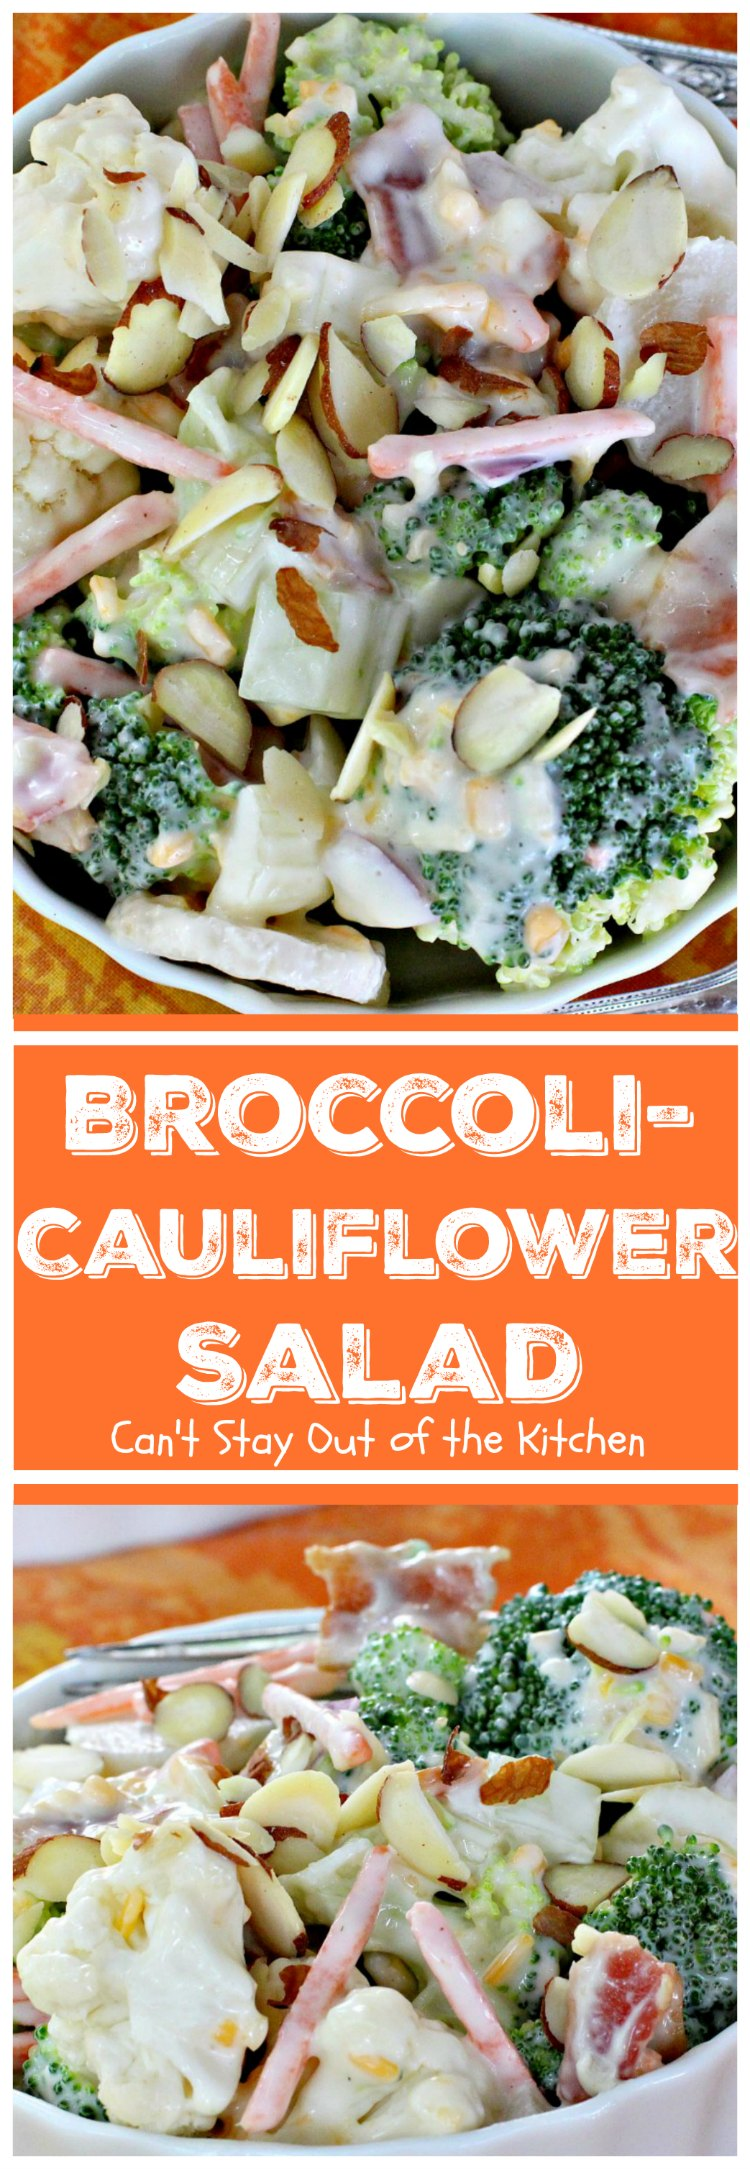 Broccoli-Cauliflower Salad | Can't Stay Out of the Kitchen